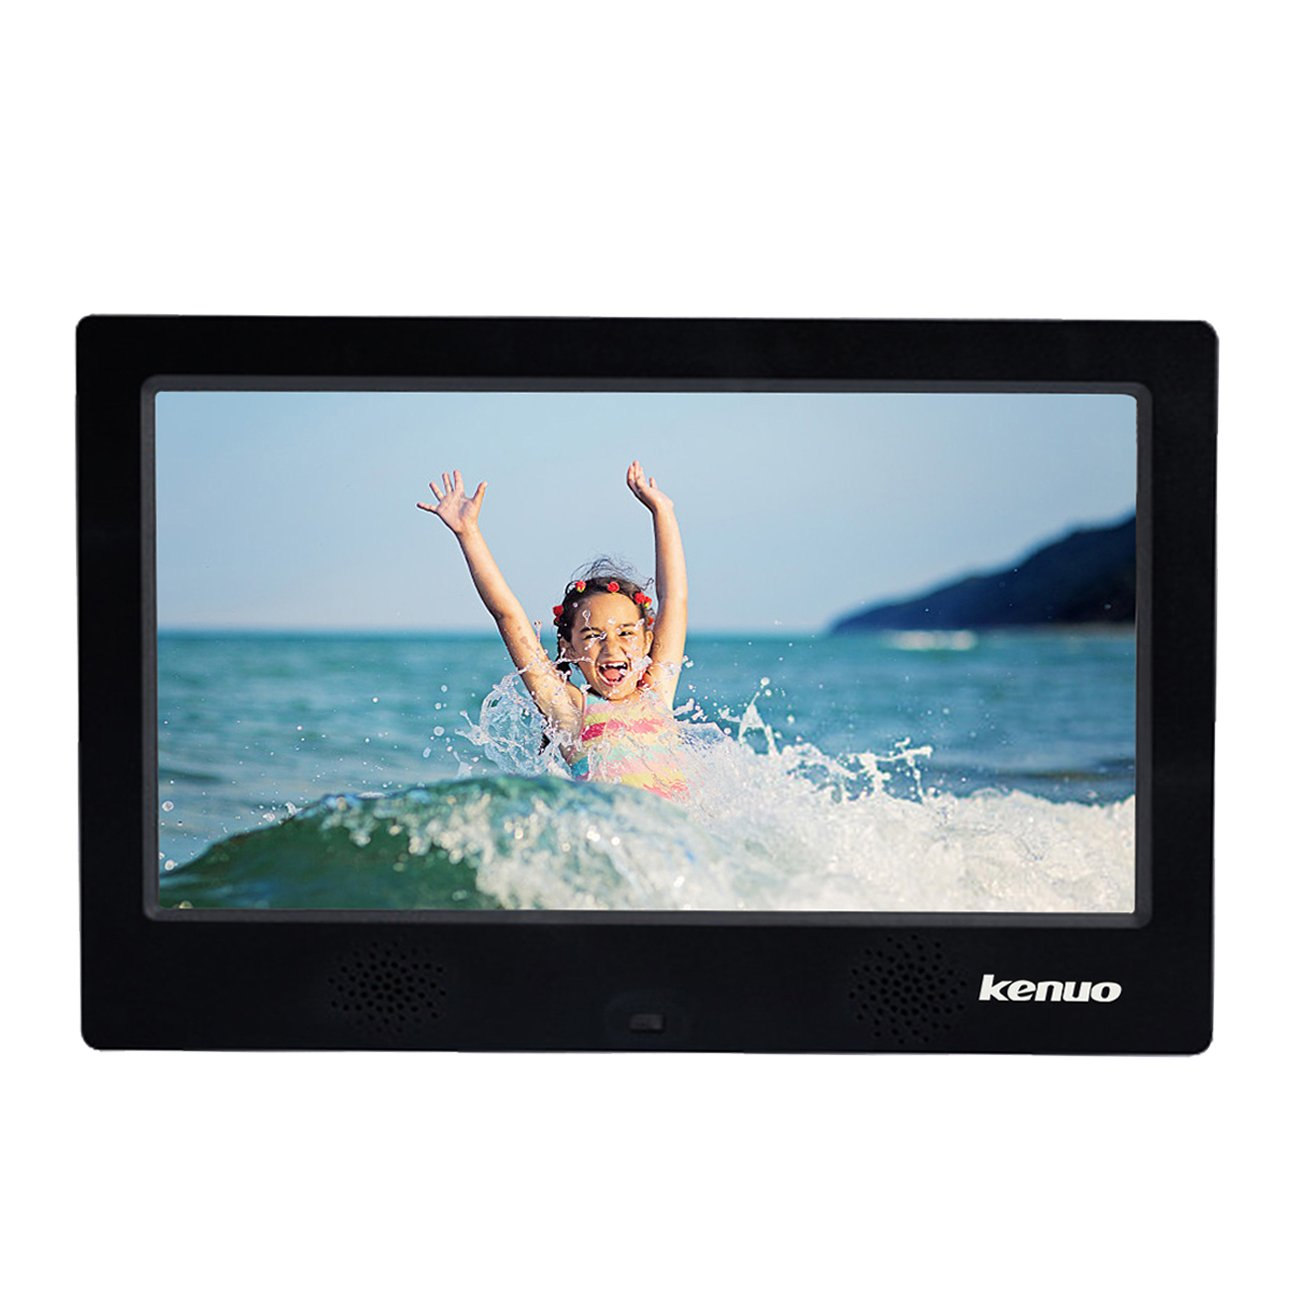 Digital Photo Frame 10 inch Kenuo High HD 1024x600(16:9) IPS Eletronic Picture Frame with Video Player Stereo MP3 Calendar Auto On/Off Timer Black